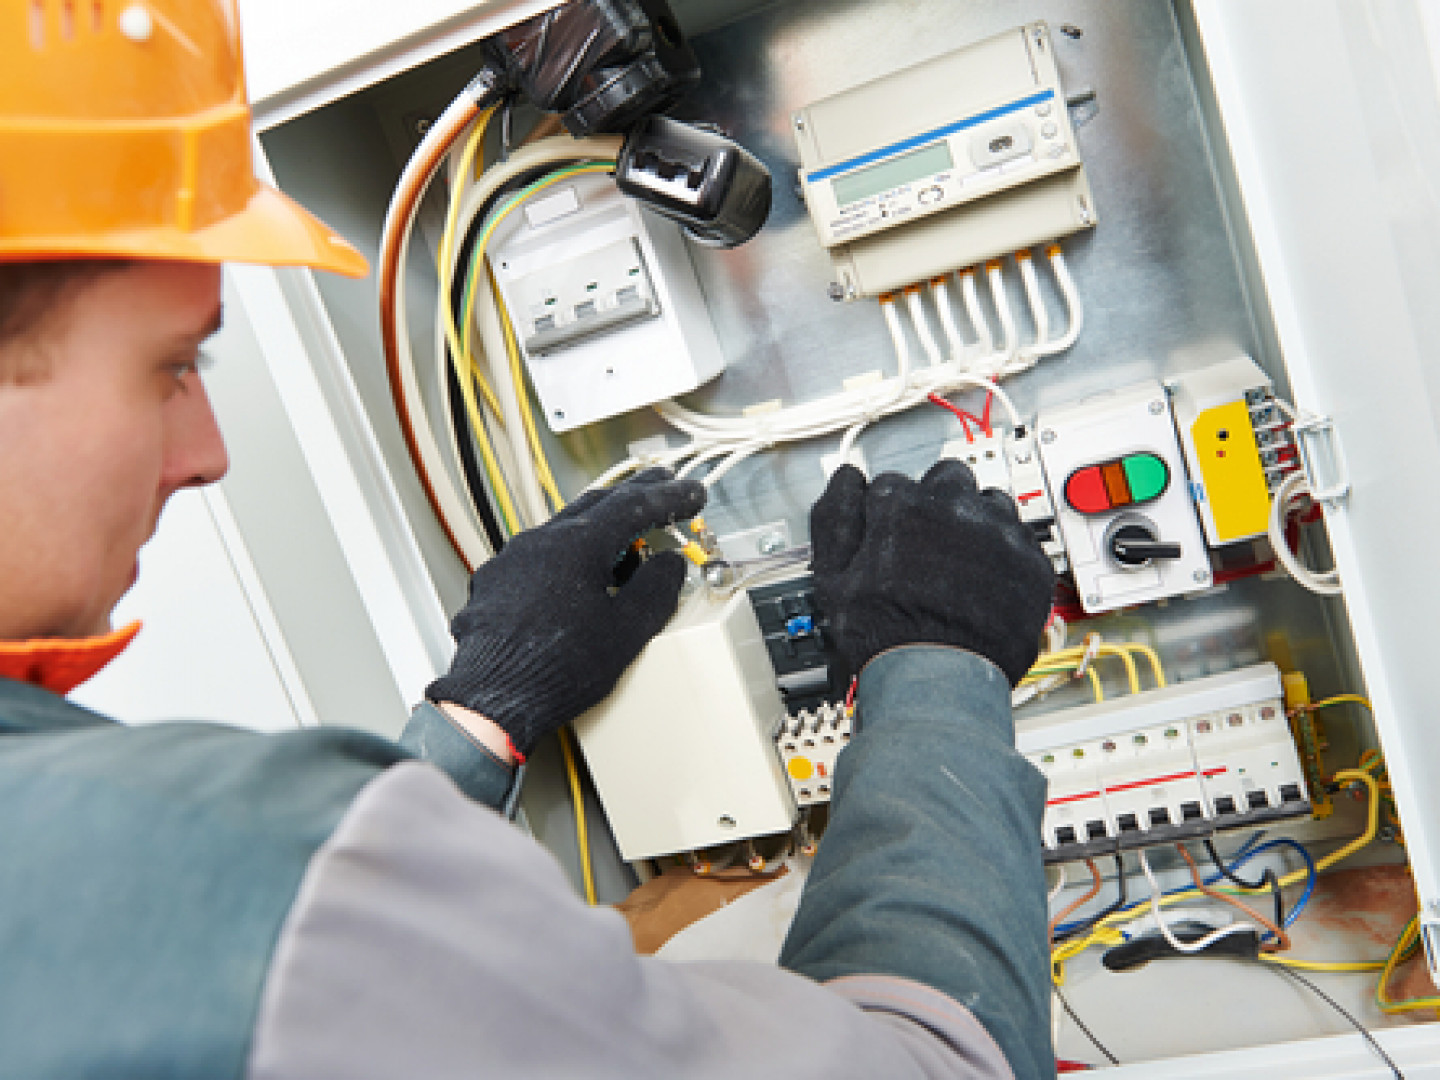 Find the Solution to Any Electrical Problem